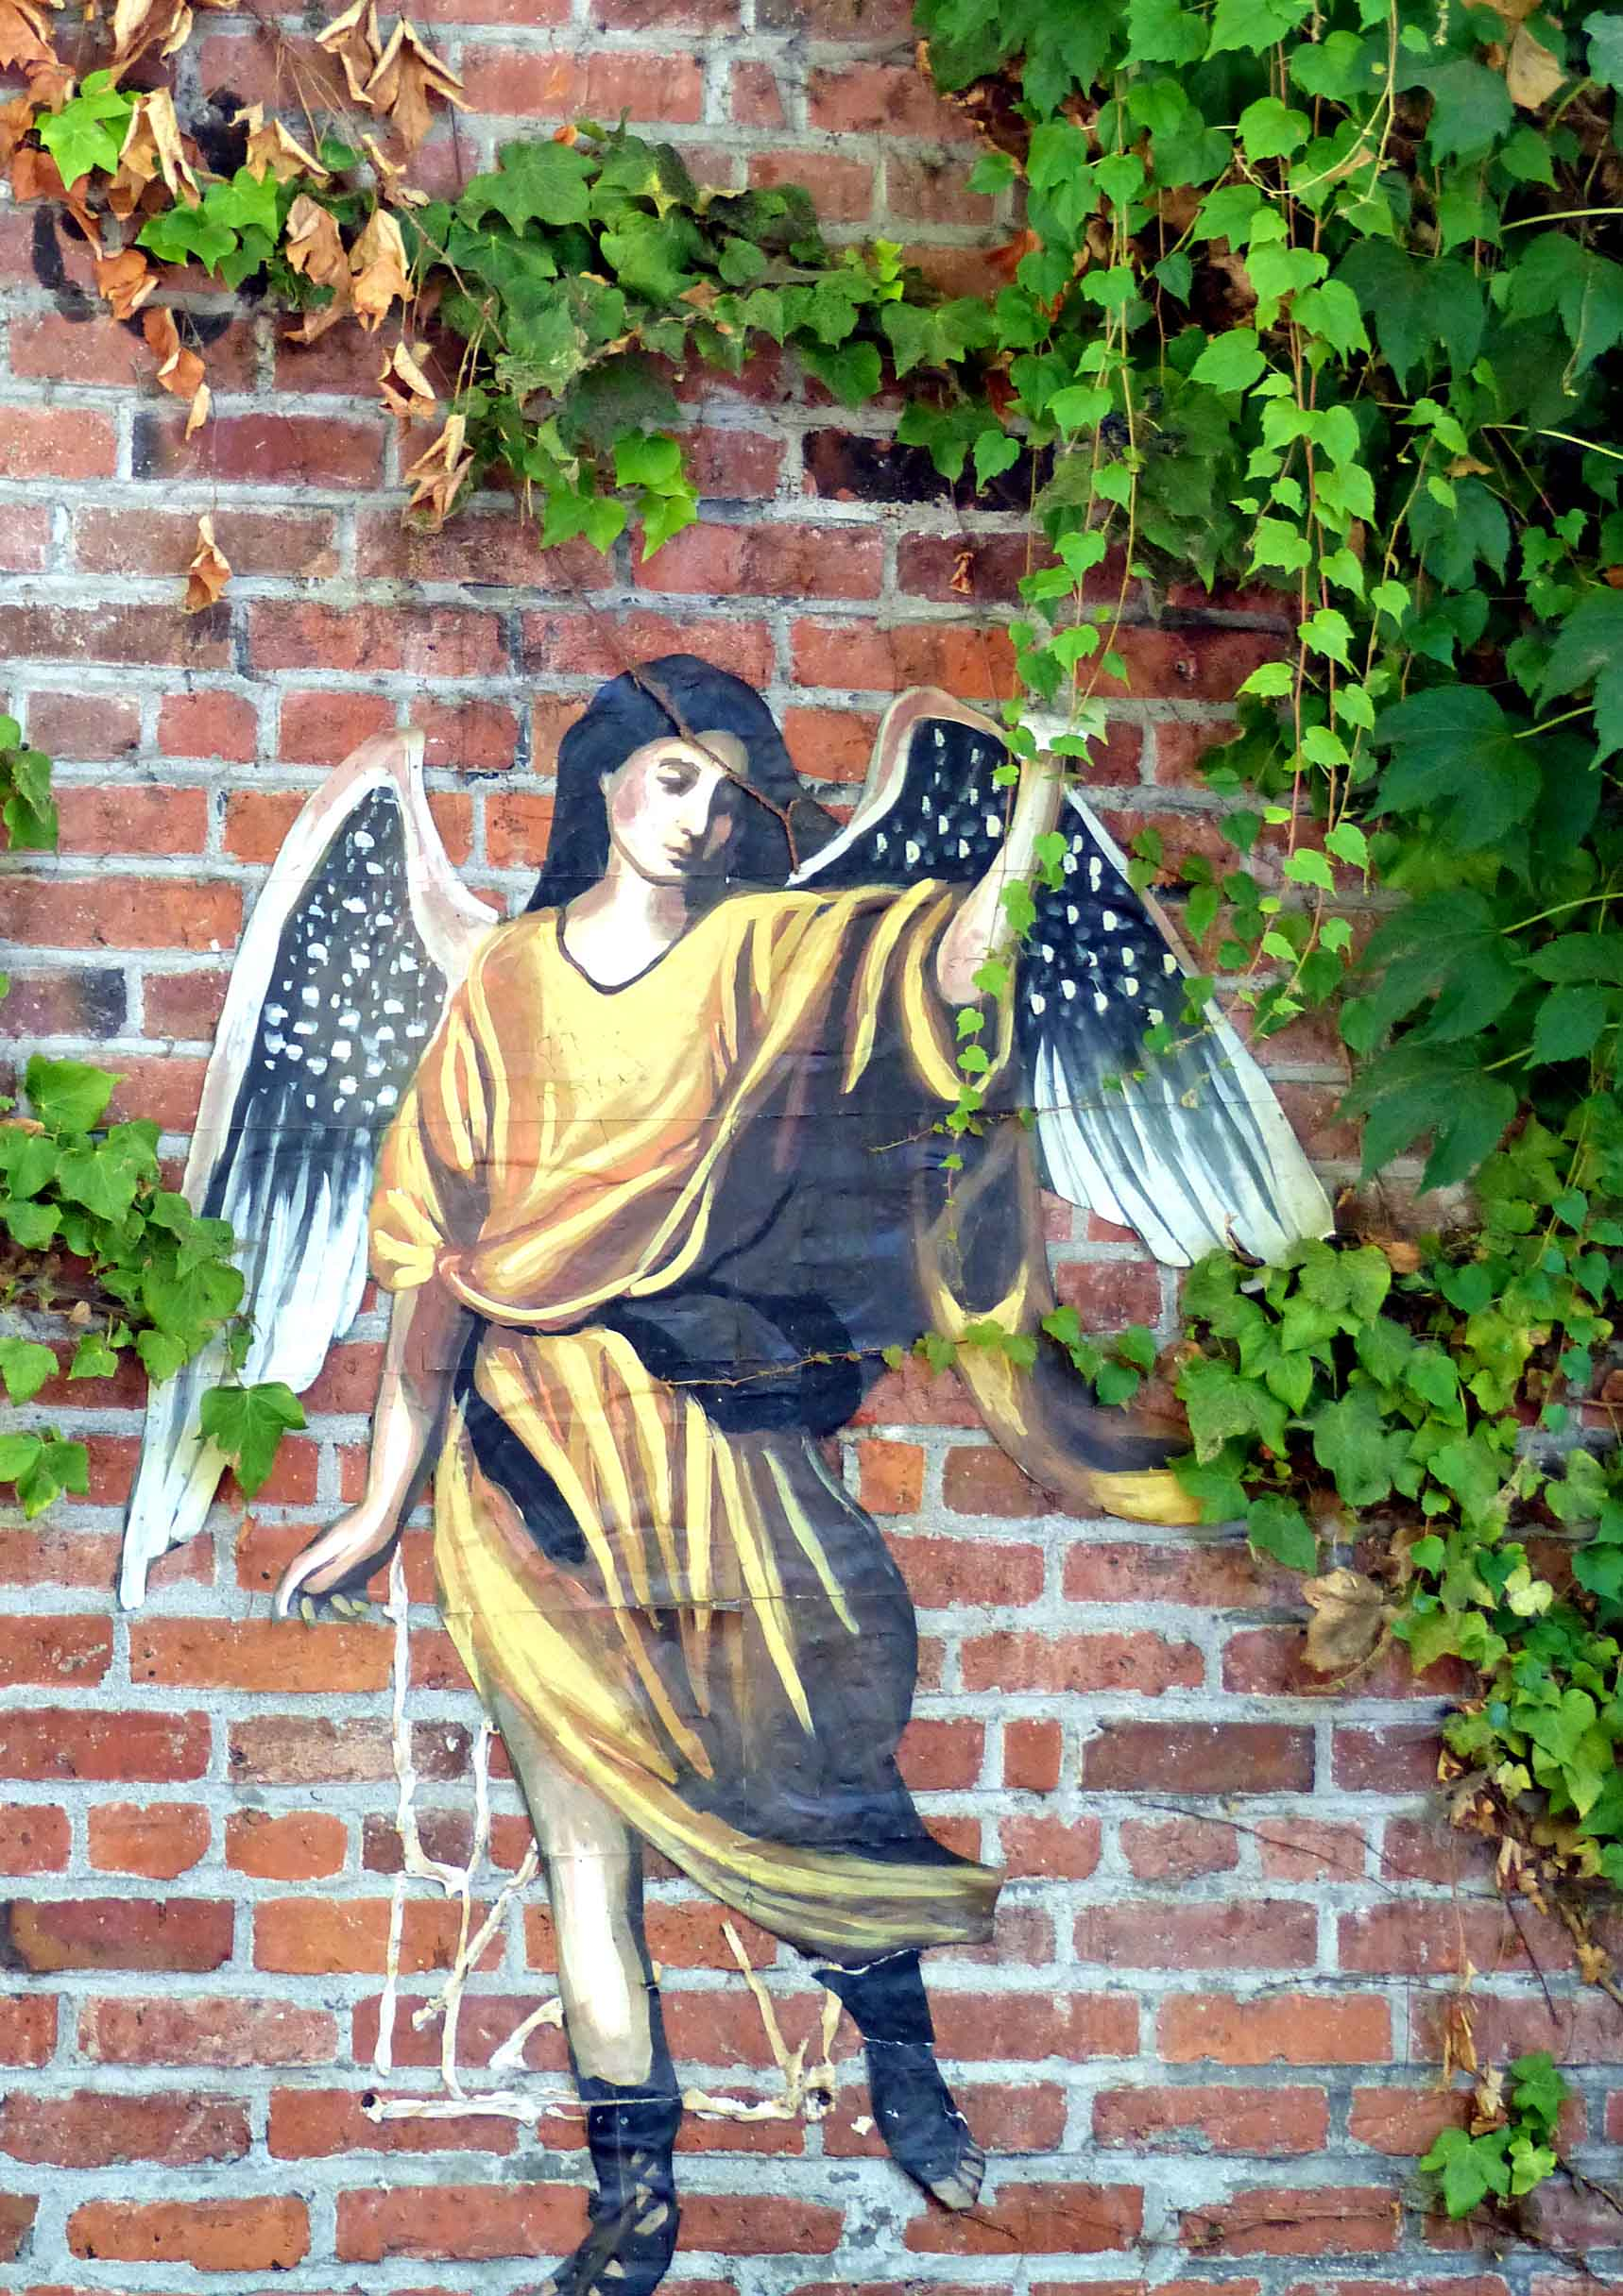 Mural of angel in yellow robe and black boots